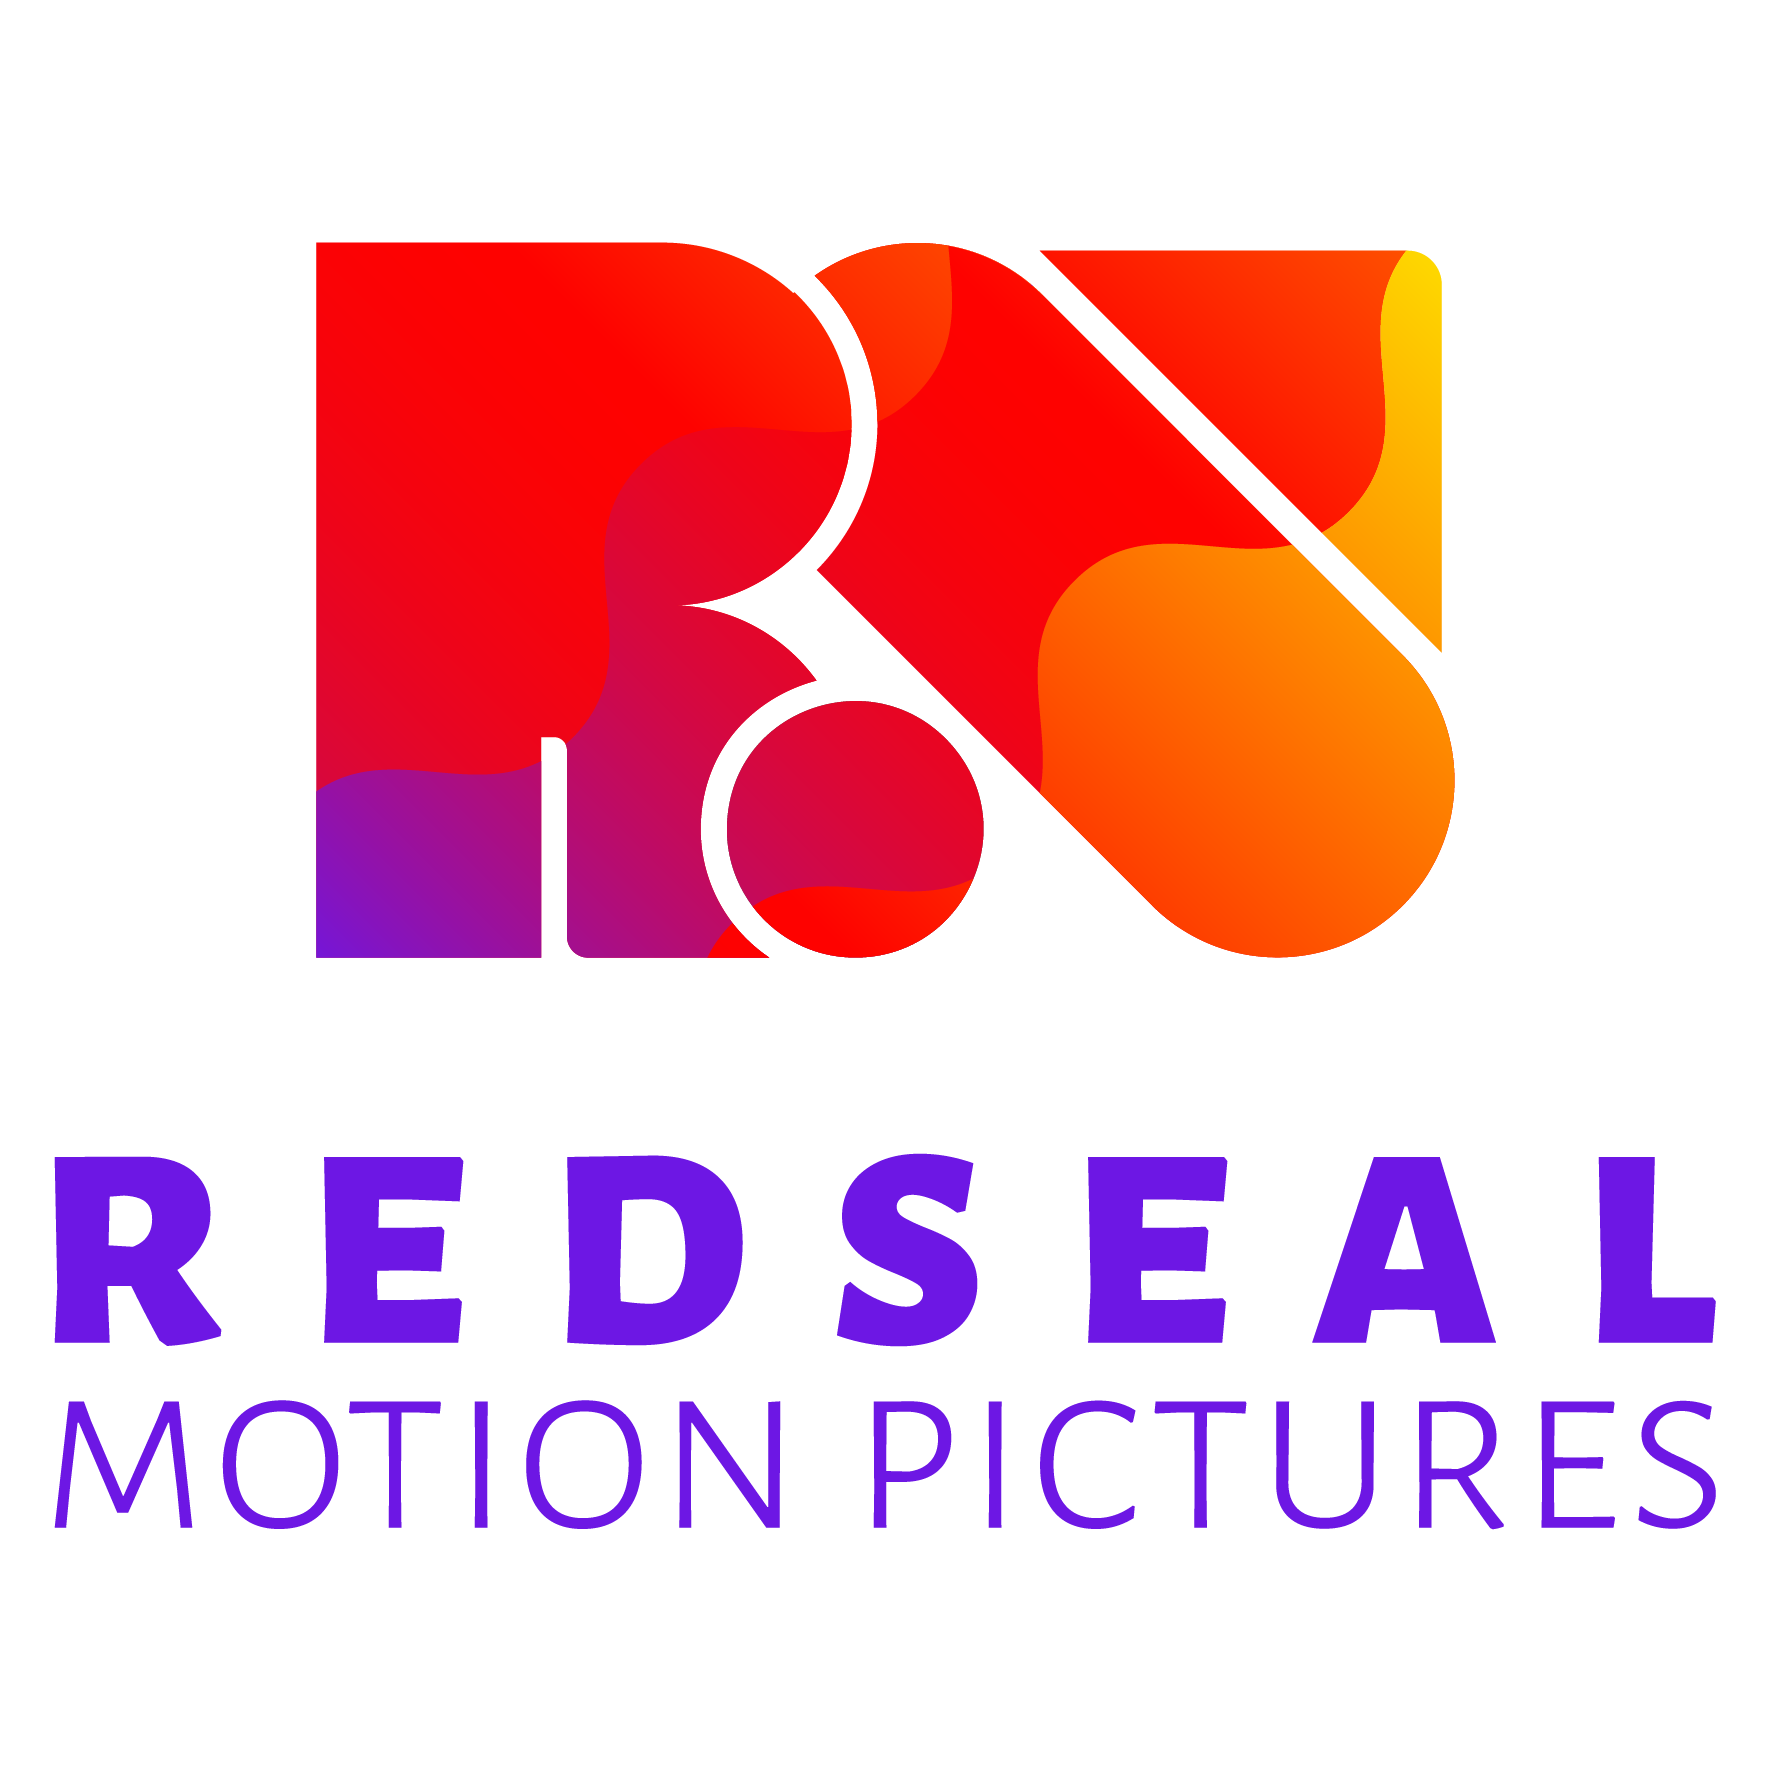 RedSeal Motion Pictures logo with text